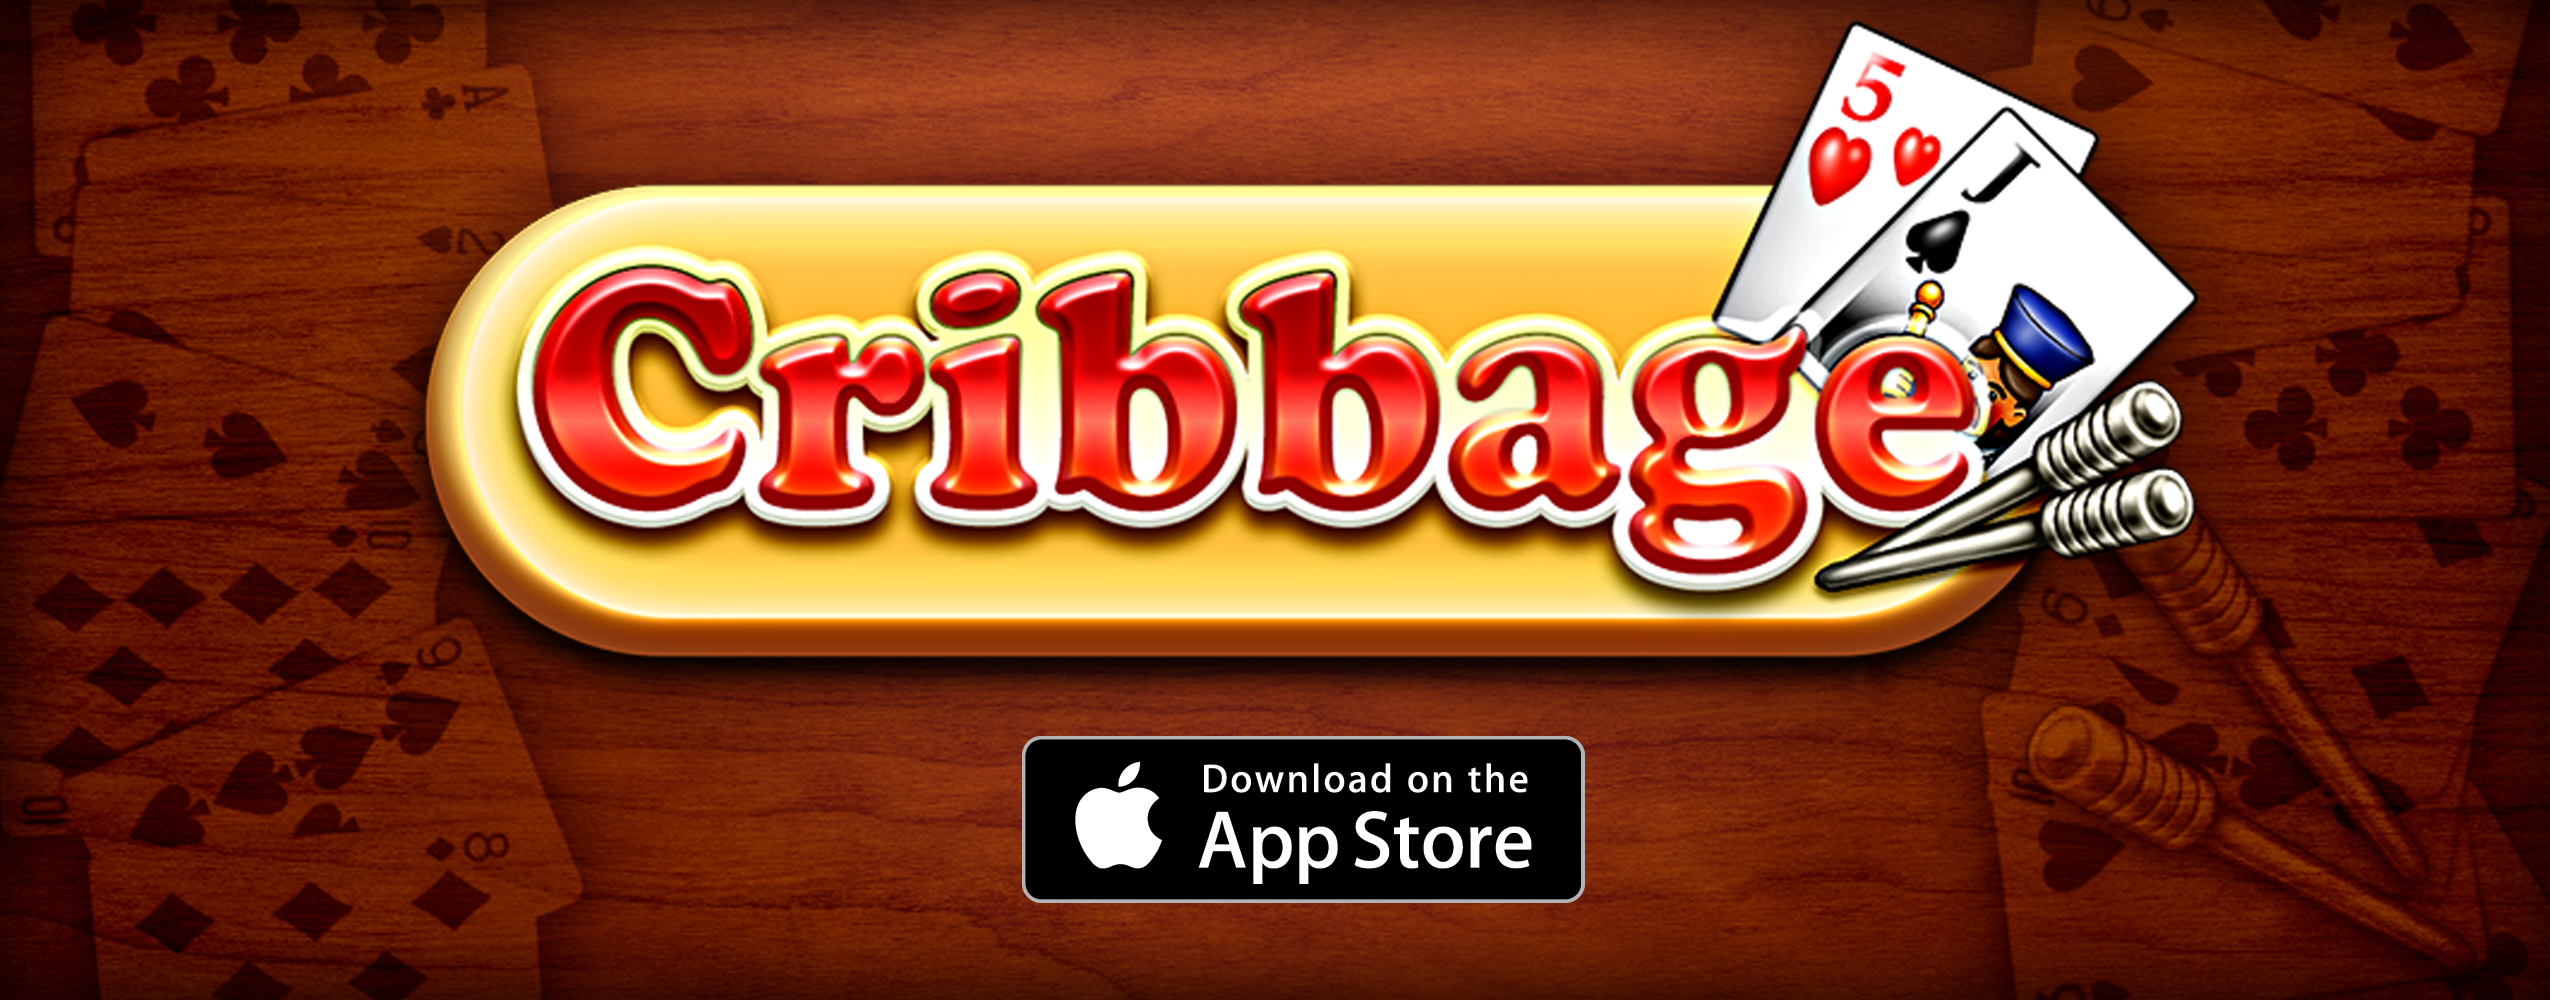 HQ Cribbage Wallpapers | File 1353.77Kb